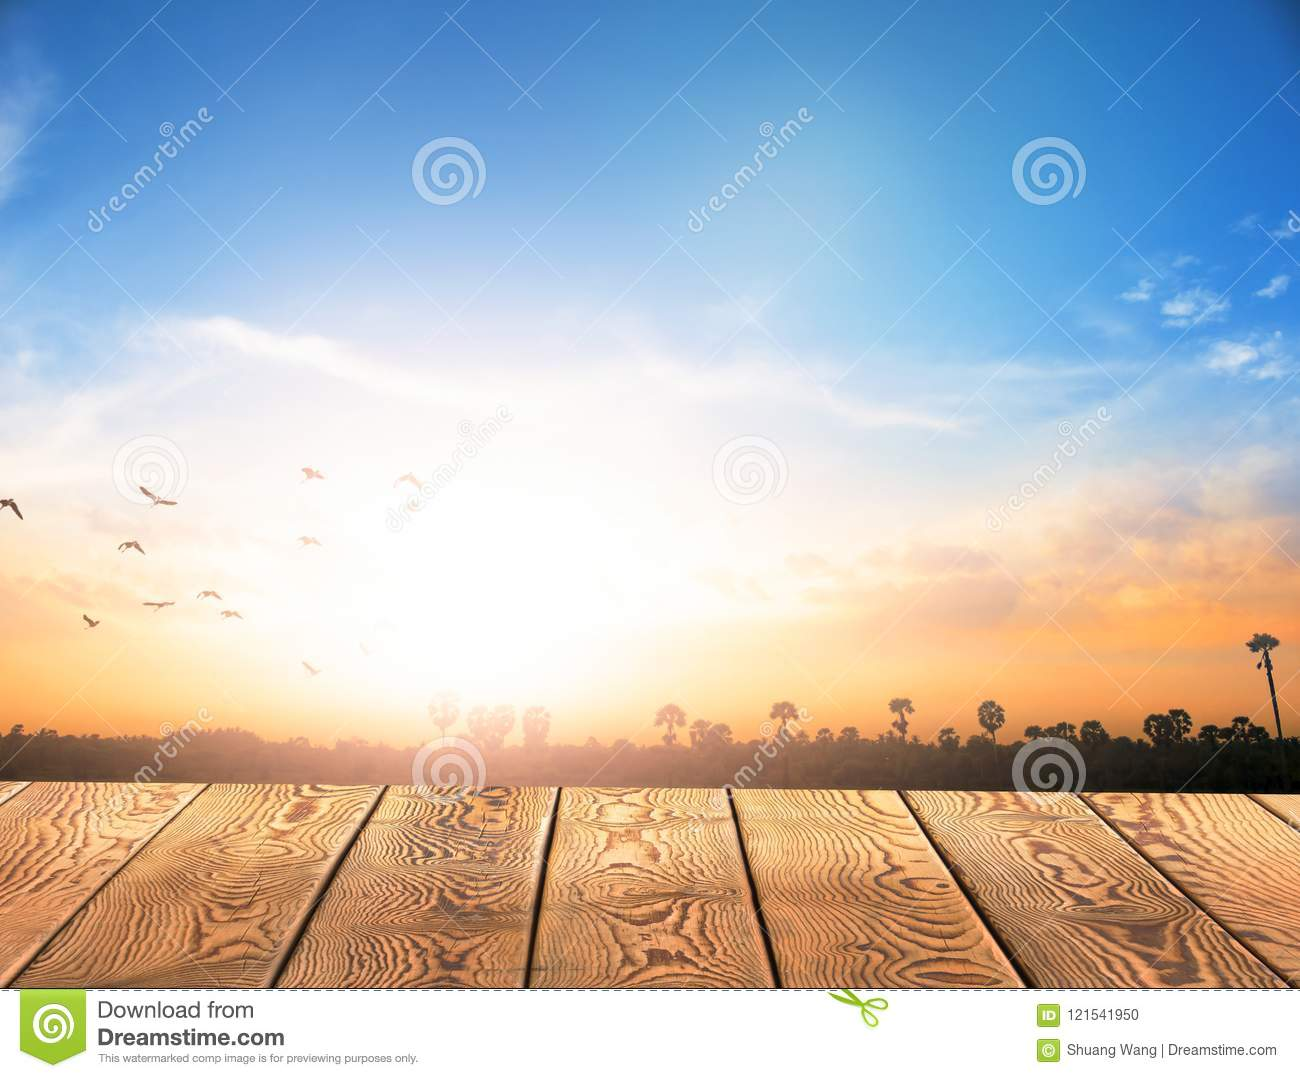 Sunrise Sunset Sky Background Of Mount Zion And Mount Of Olives